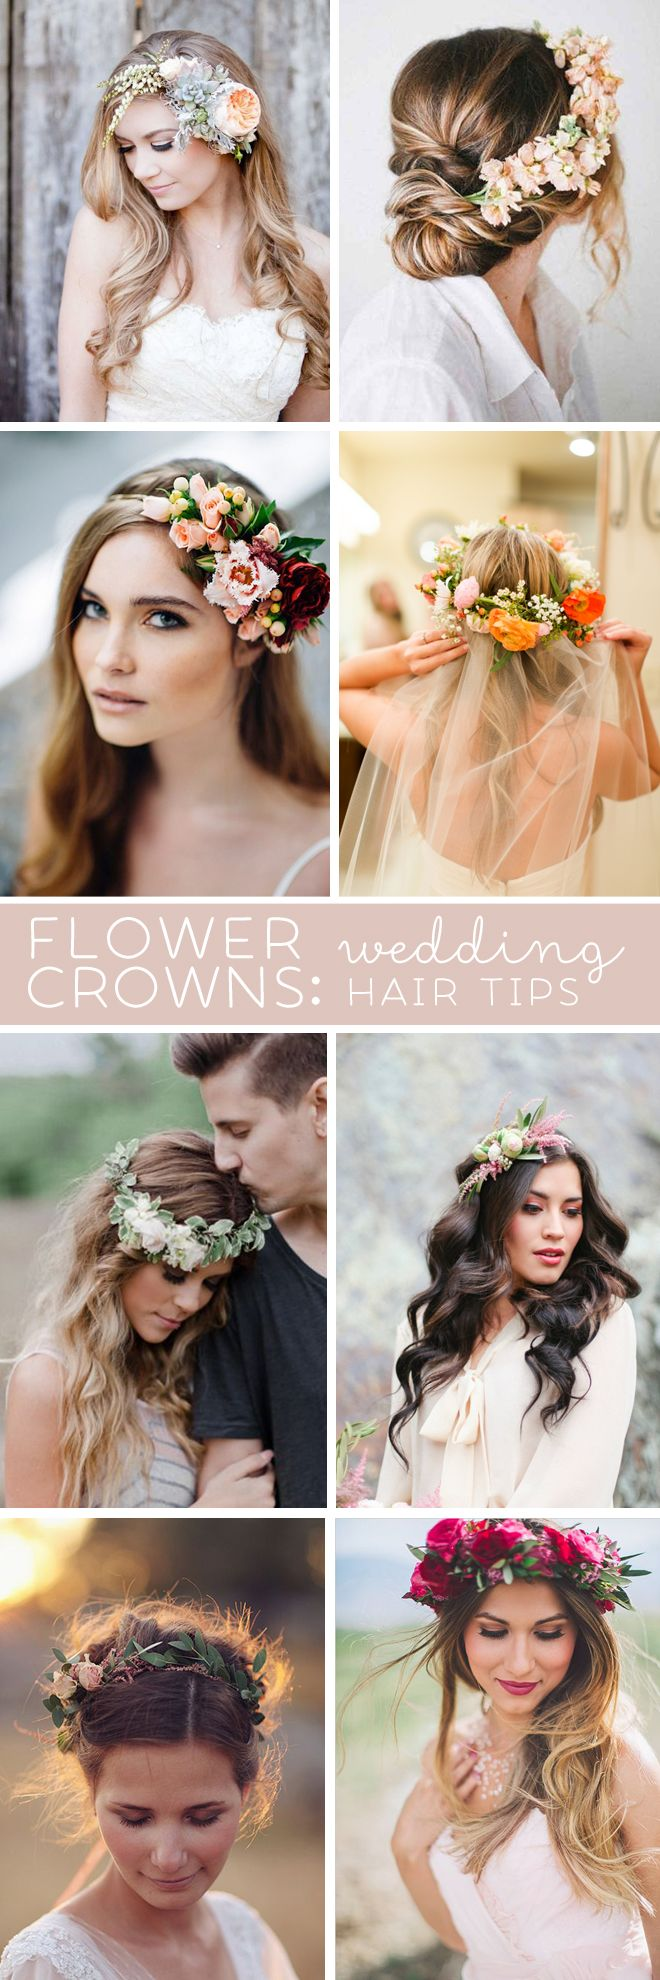 baby hair style picture 25 best ideas about flower headpiece on 5433 | 4b3aabf56fe68cc8e9fca5433c90c8ef